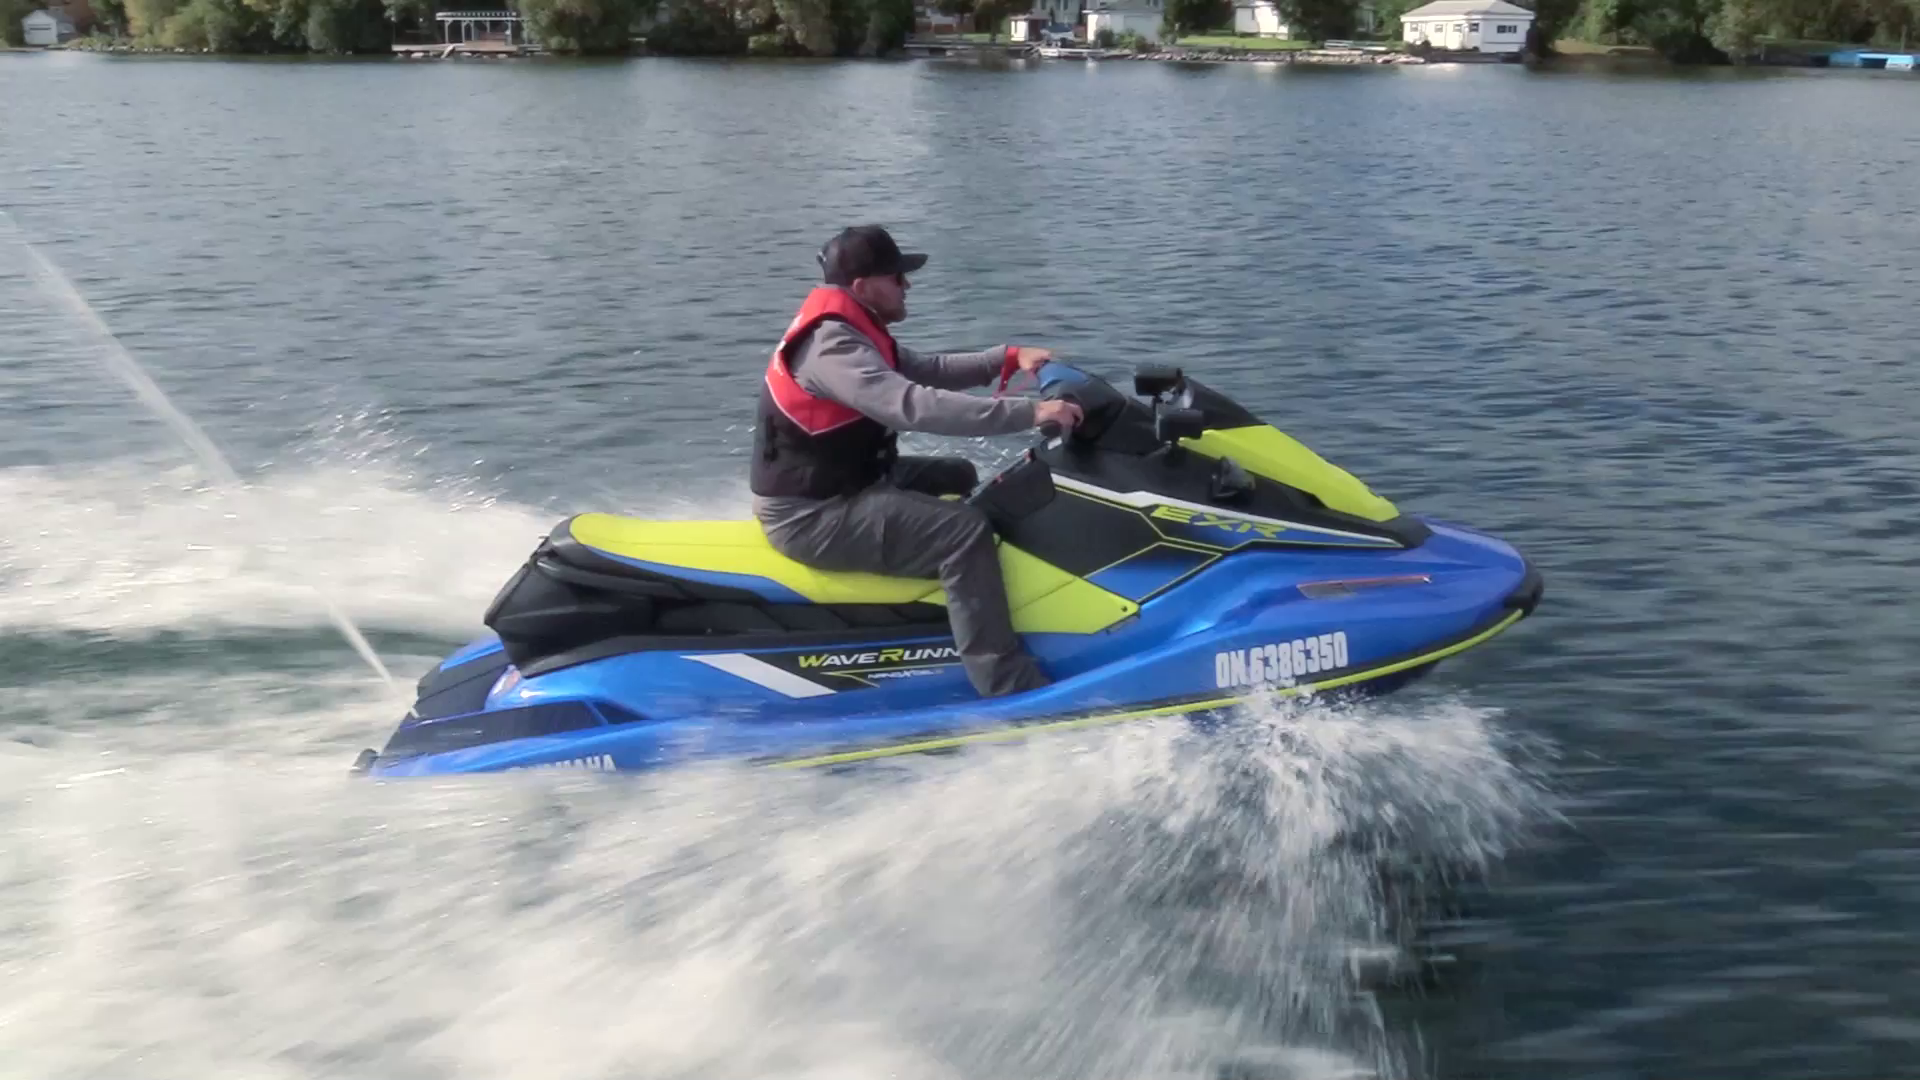 2020 Yamaha Exr Personal Water Craft Boat Review Boatdealers Ca